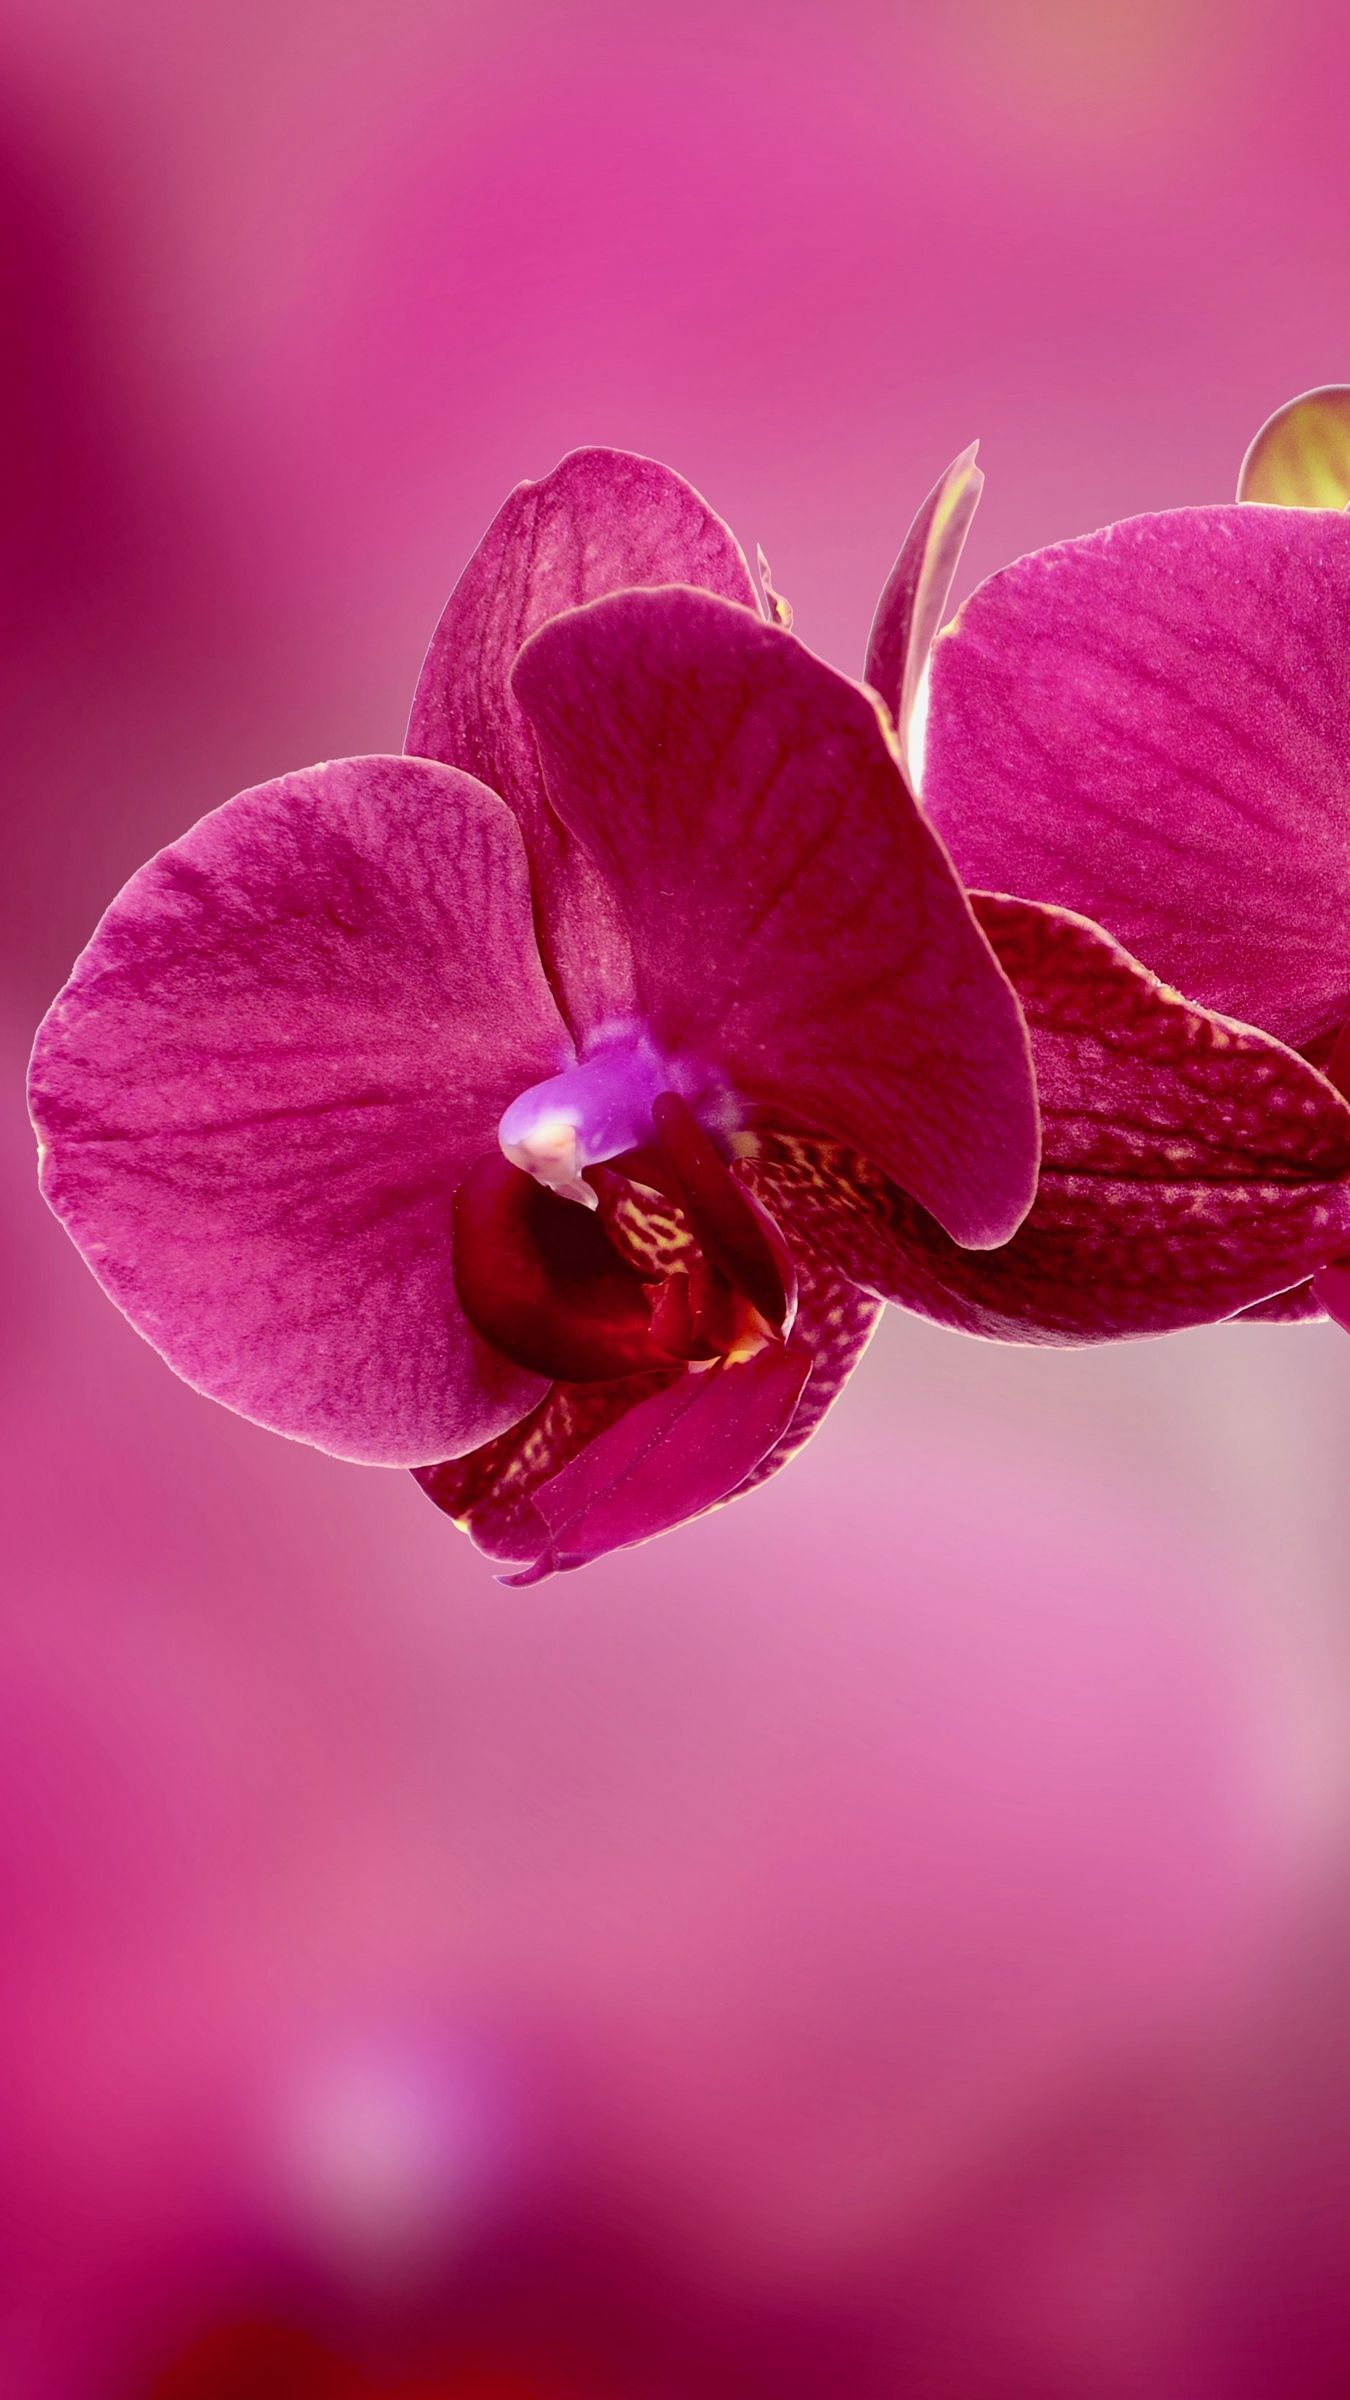 Orchid Flower Petals Pink Wallpaper Background Iphone Orchid Wallpaper Flower Wallpaper Beautiful Flowers Wallpapers